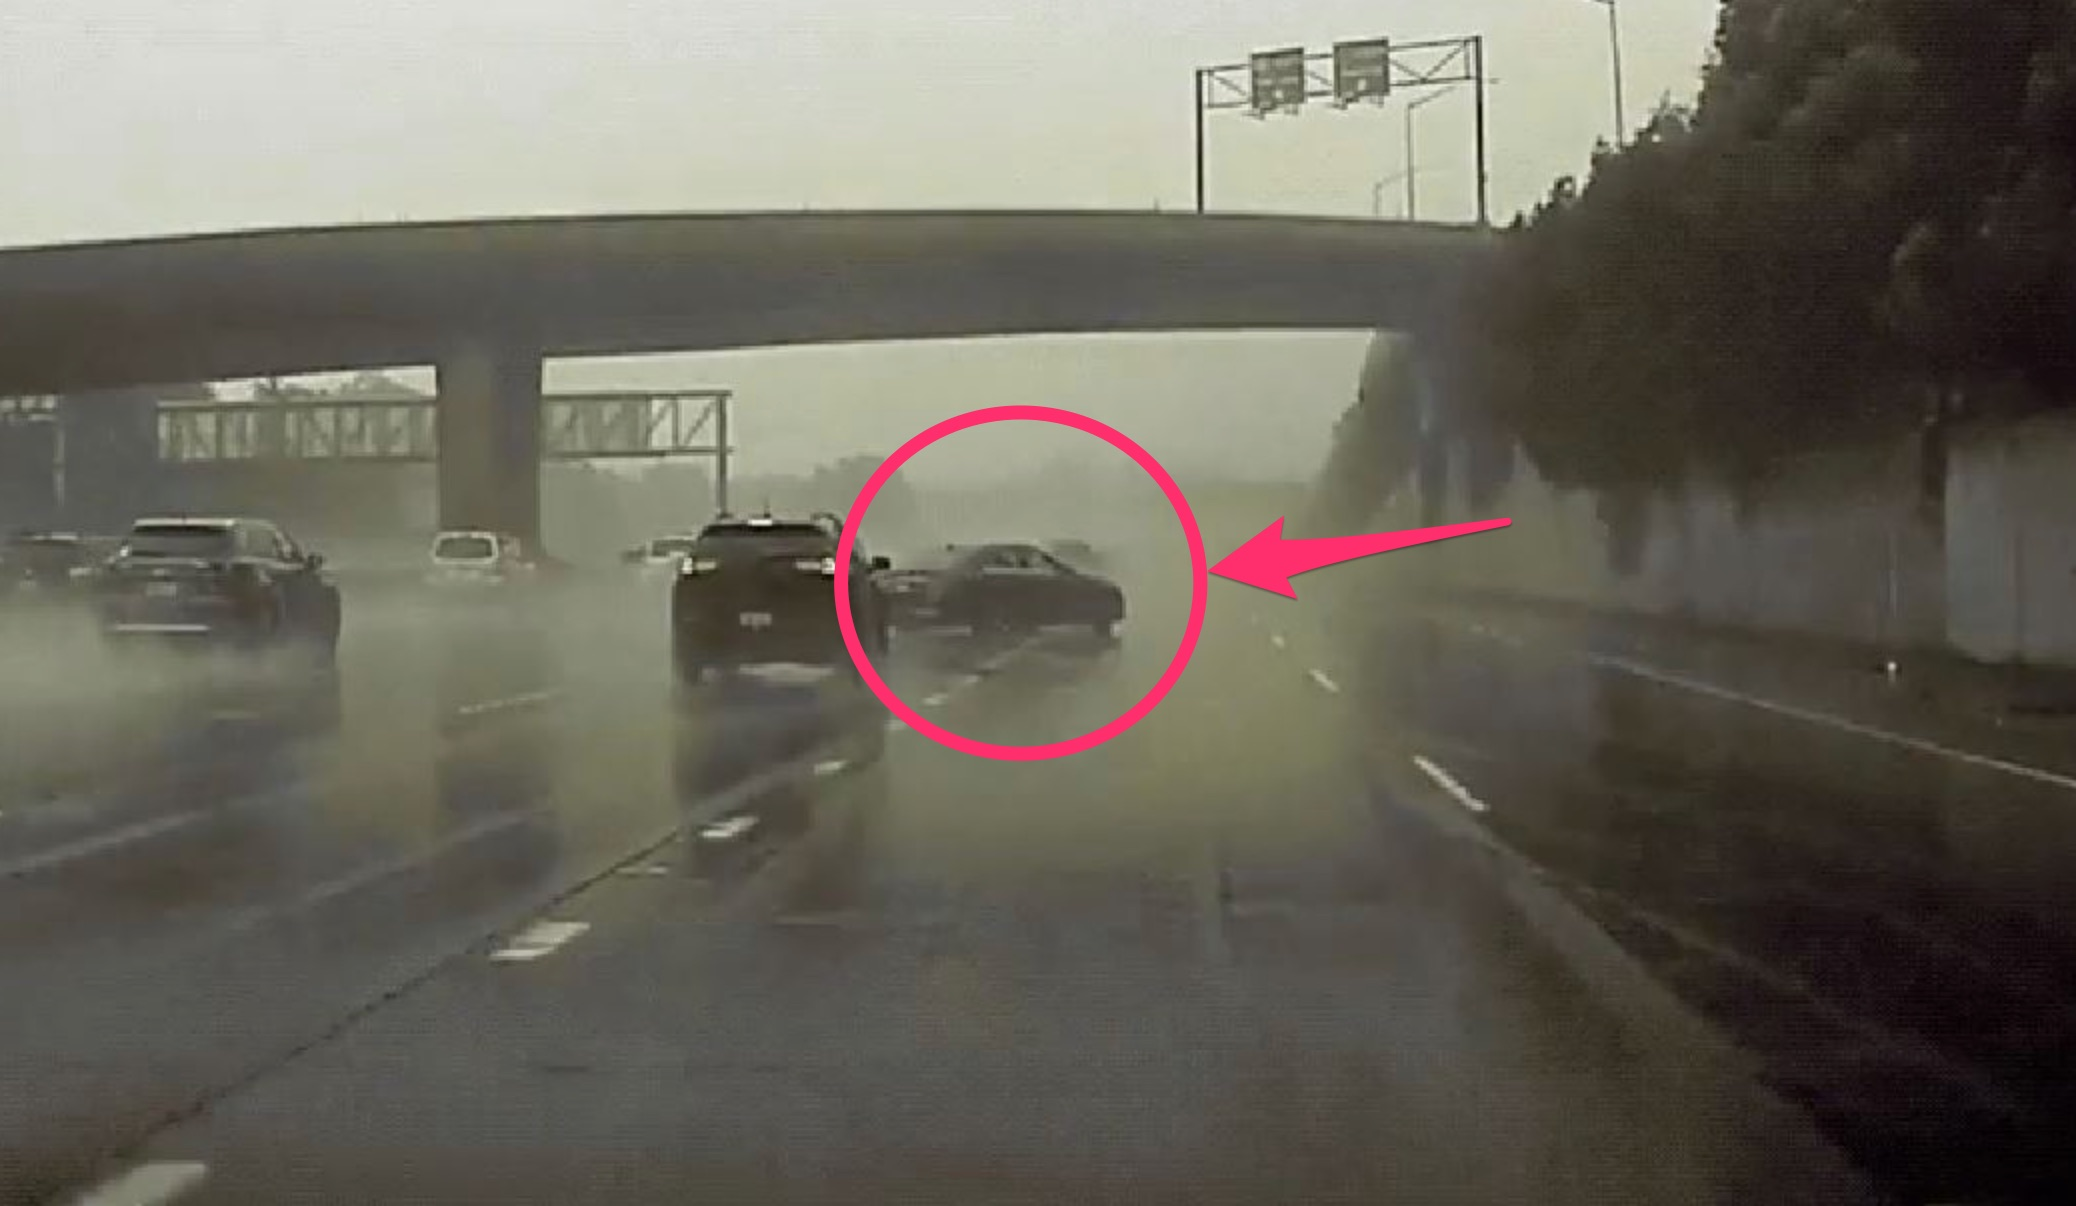 tesla-dashcam-footage-rain-accident